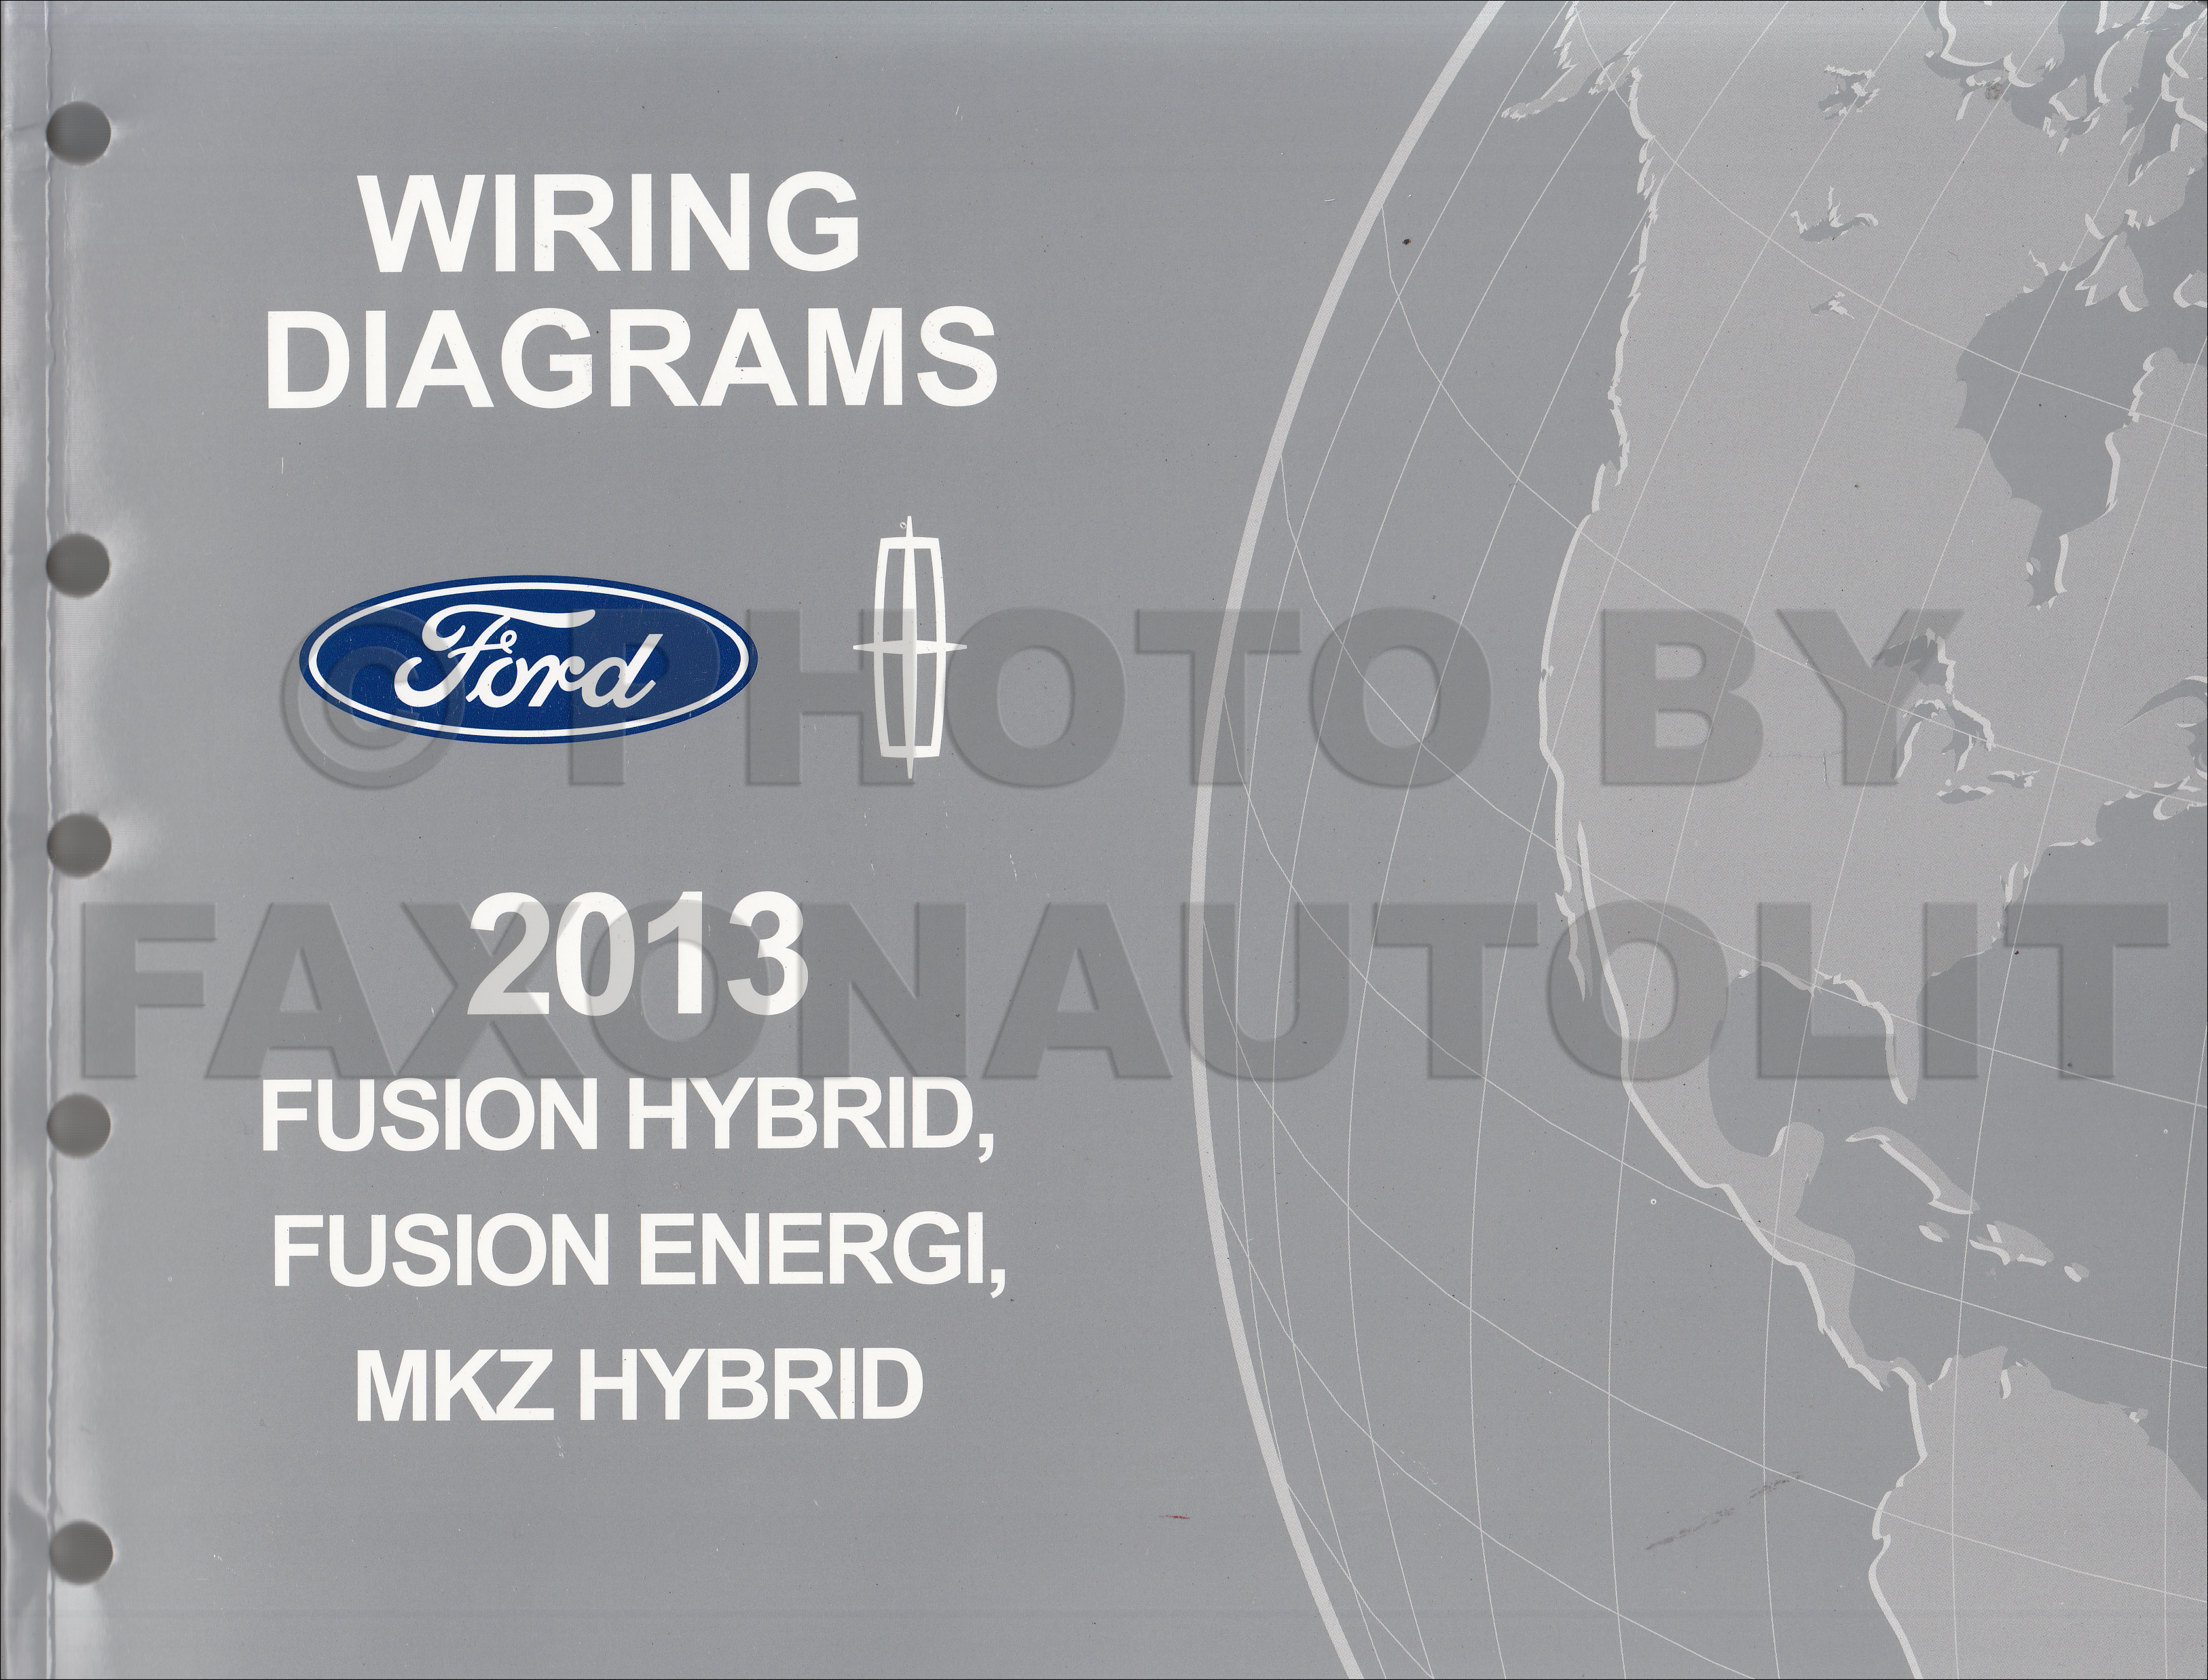 2013 ford fusion energi lincoln mkz hybrid wiring diagram manual ford e-350  van wiring